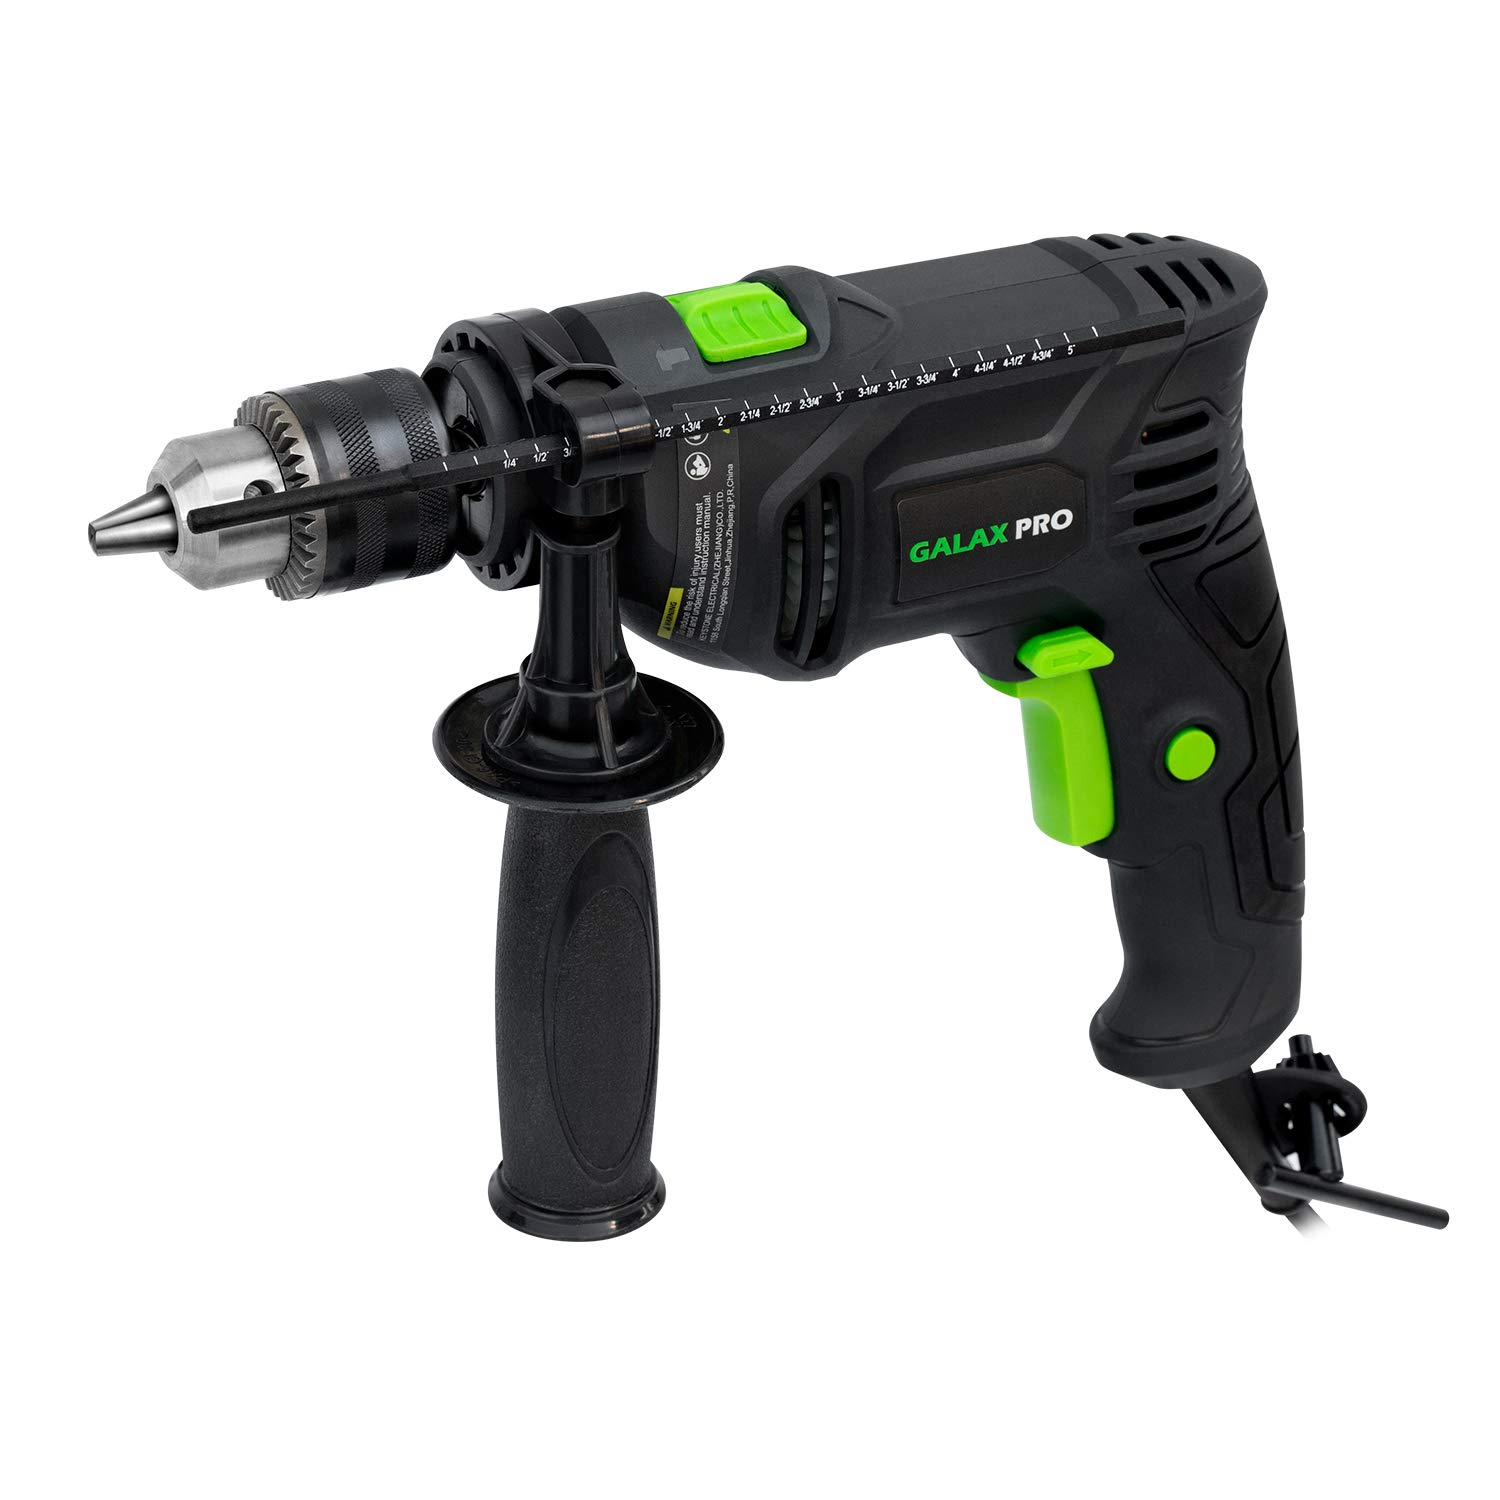 Hammer Drill, 4.5A Corded Drill GALAX PRO Impact Drill 0-3000RPM Electric Drill with 1/2'' Keyed Chuck and Depth Gauge for Drilling Wood, Steel, Masonry, Cement, Concrete_GP57325